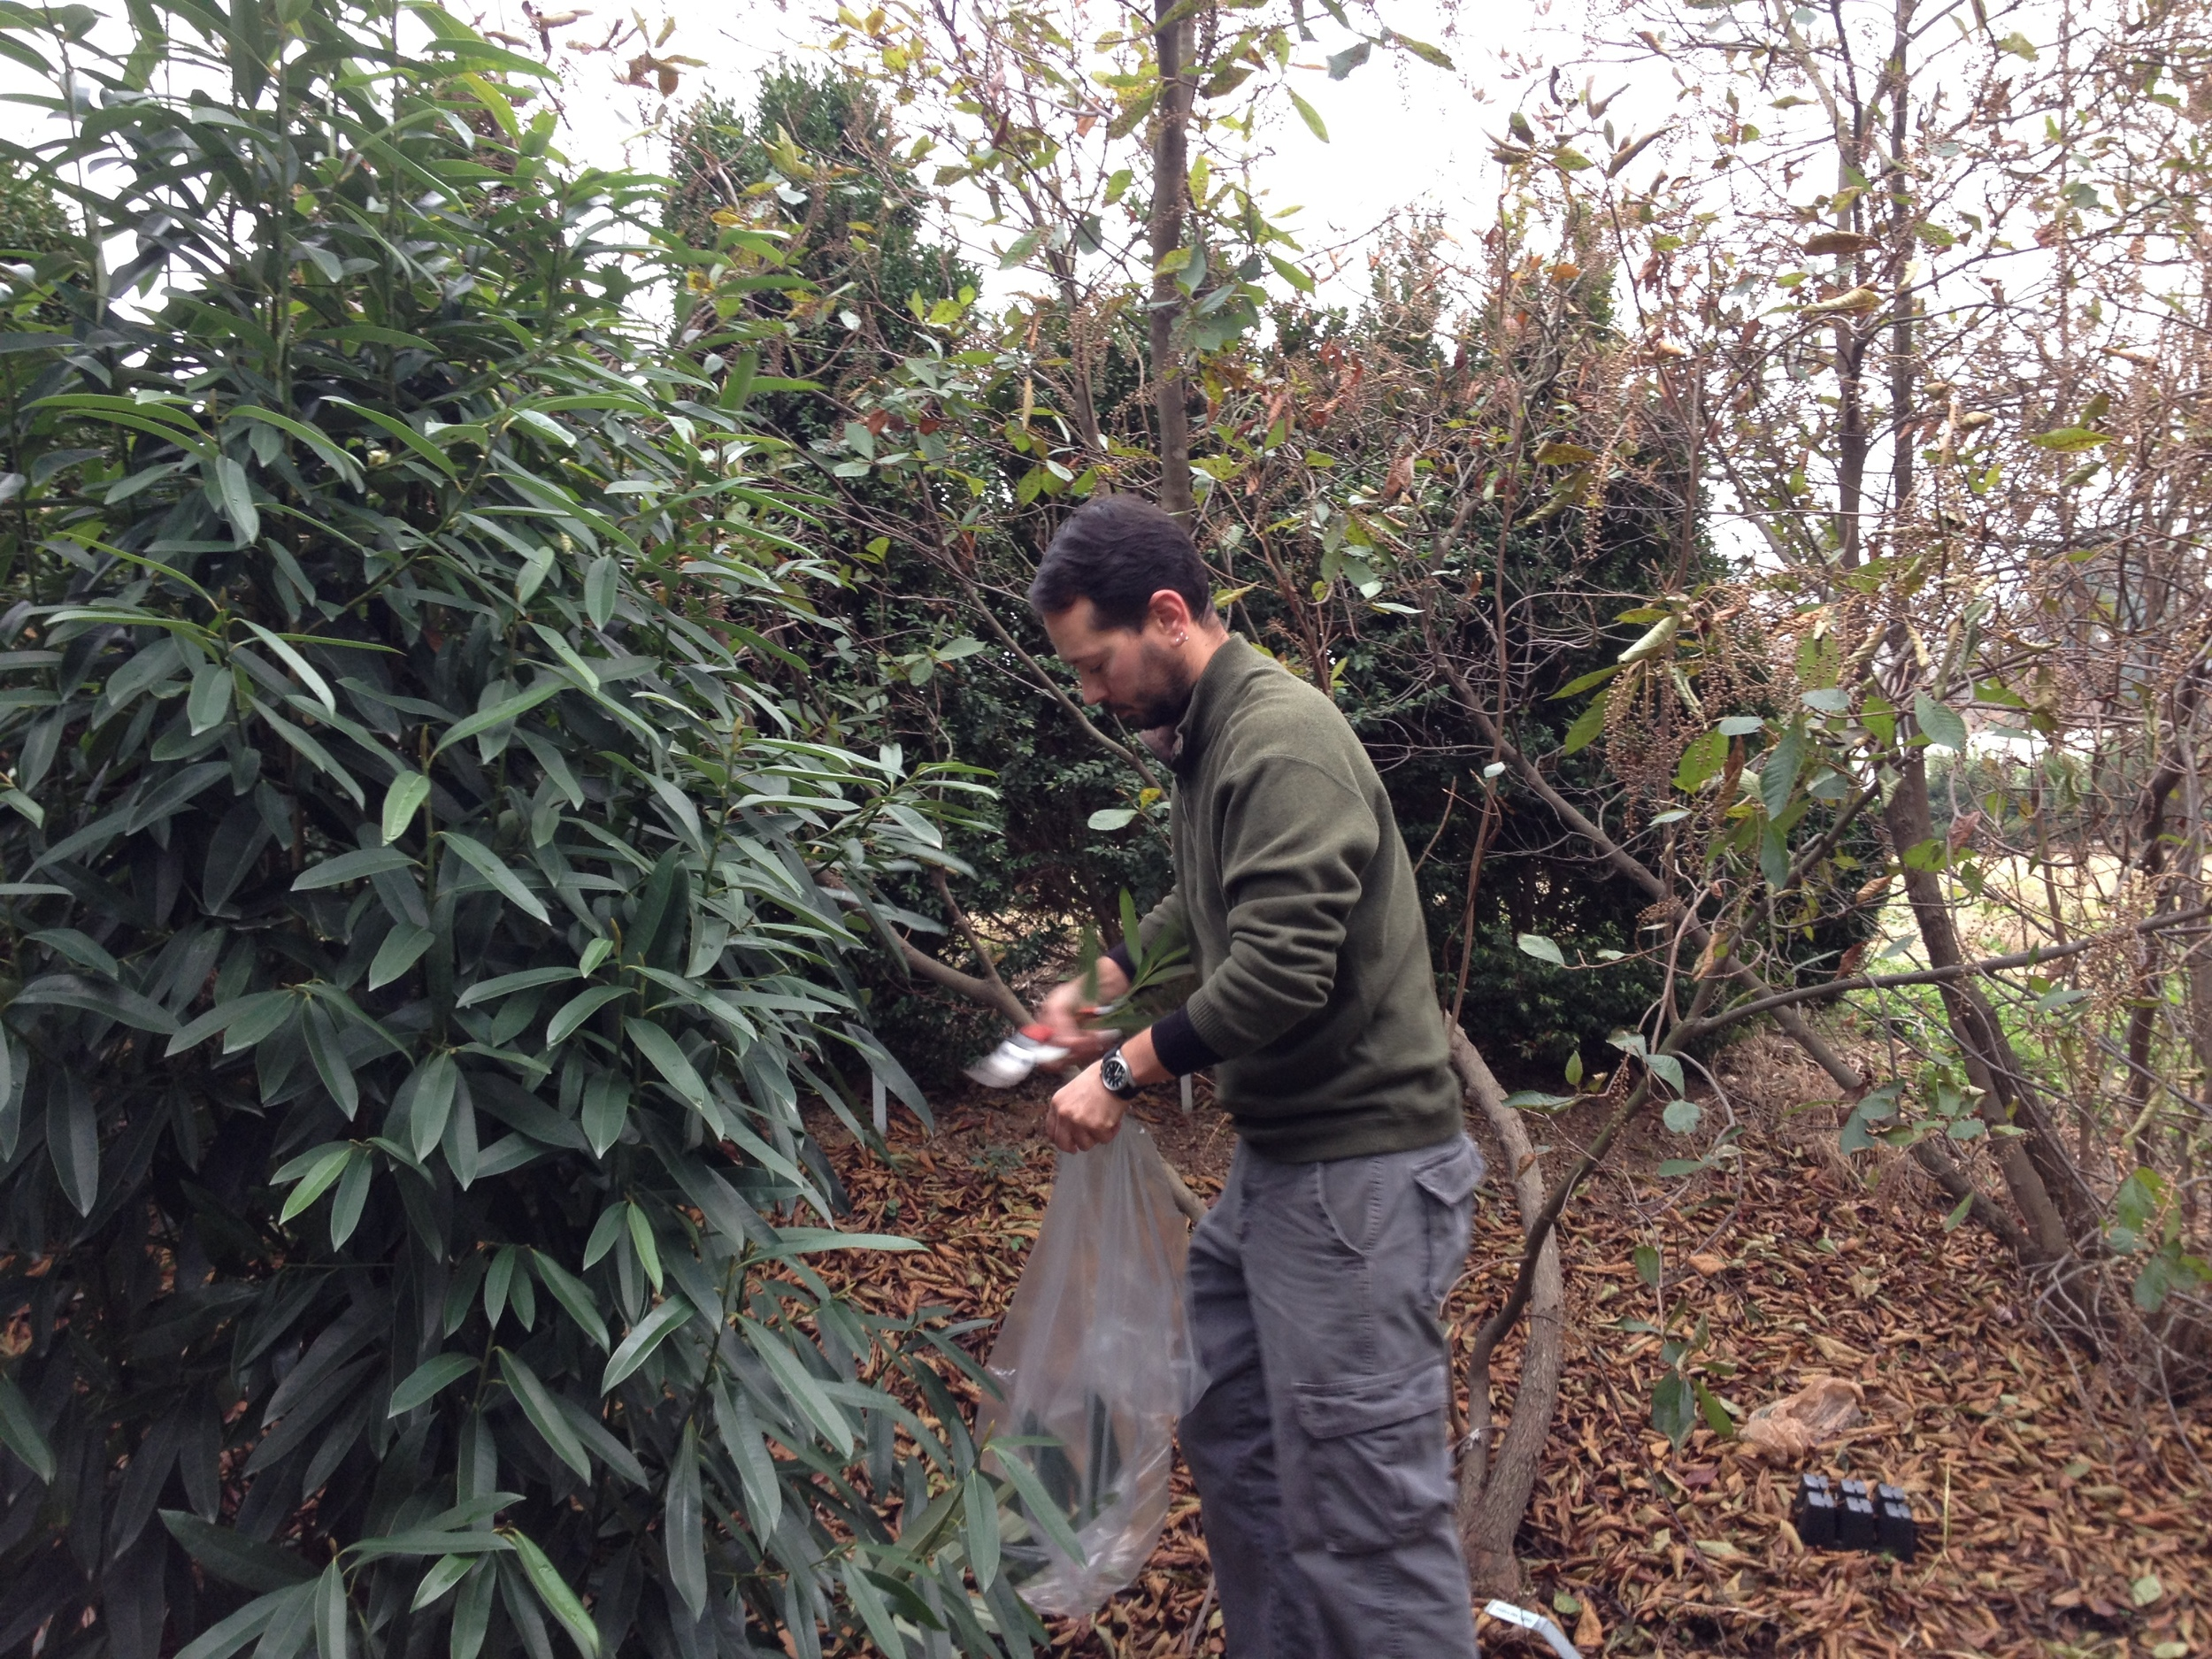 Graduate student Dominic Gillooly collecting a couple hundred cuttings of Magnolia yuyuanensis for a research project.